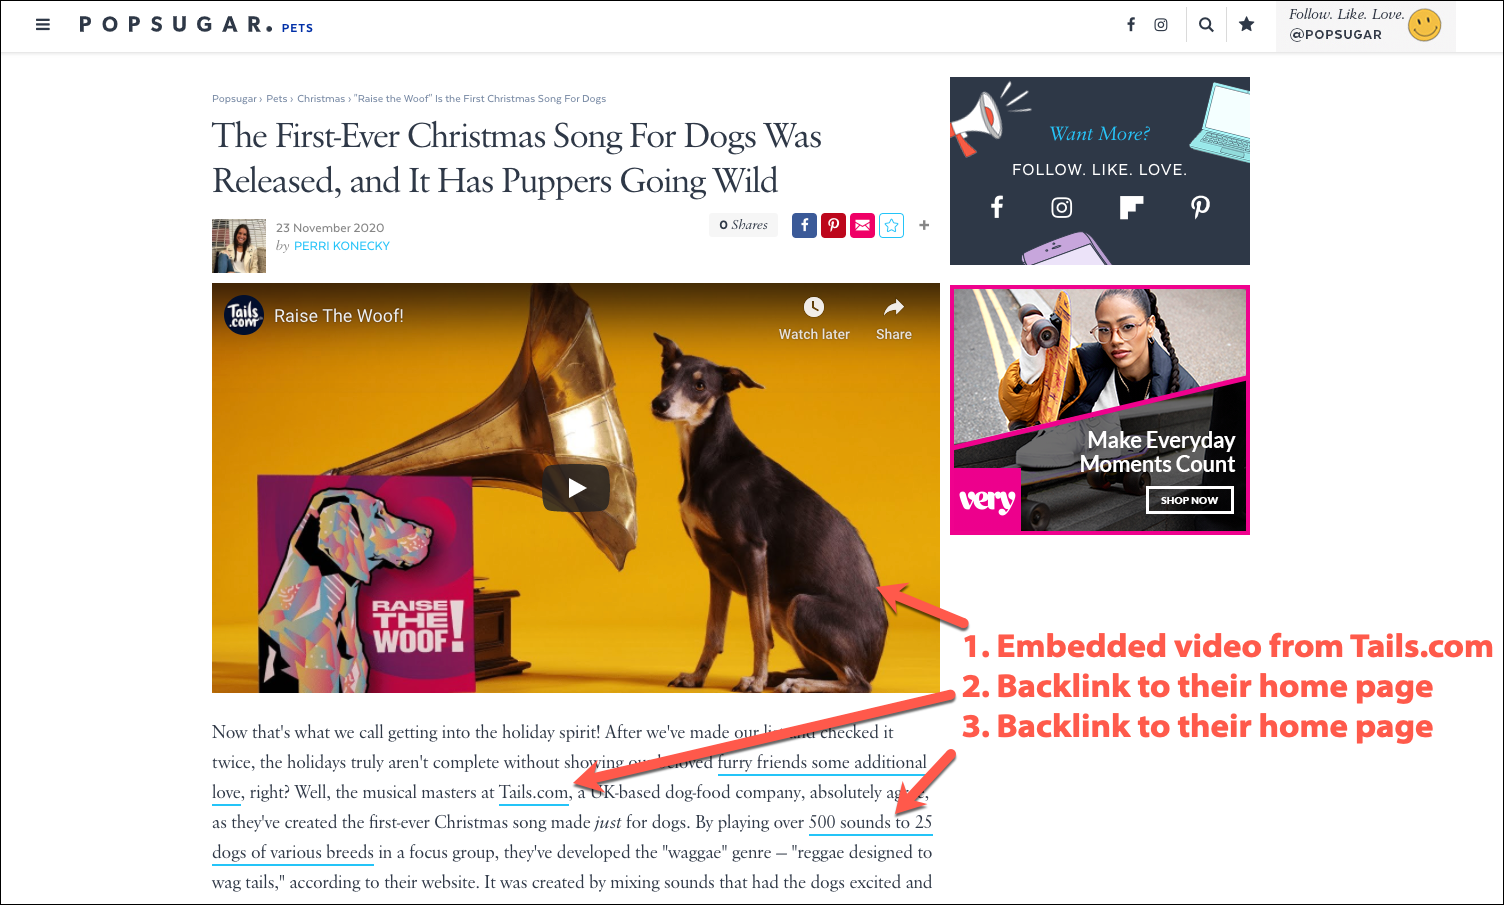 First Christmas Song aimed at Dogs earns media backlinks and embedded video on Popsugar